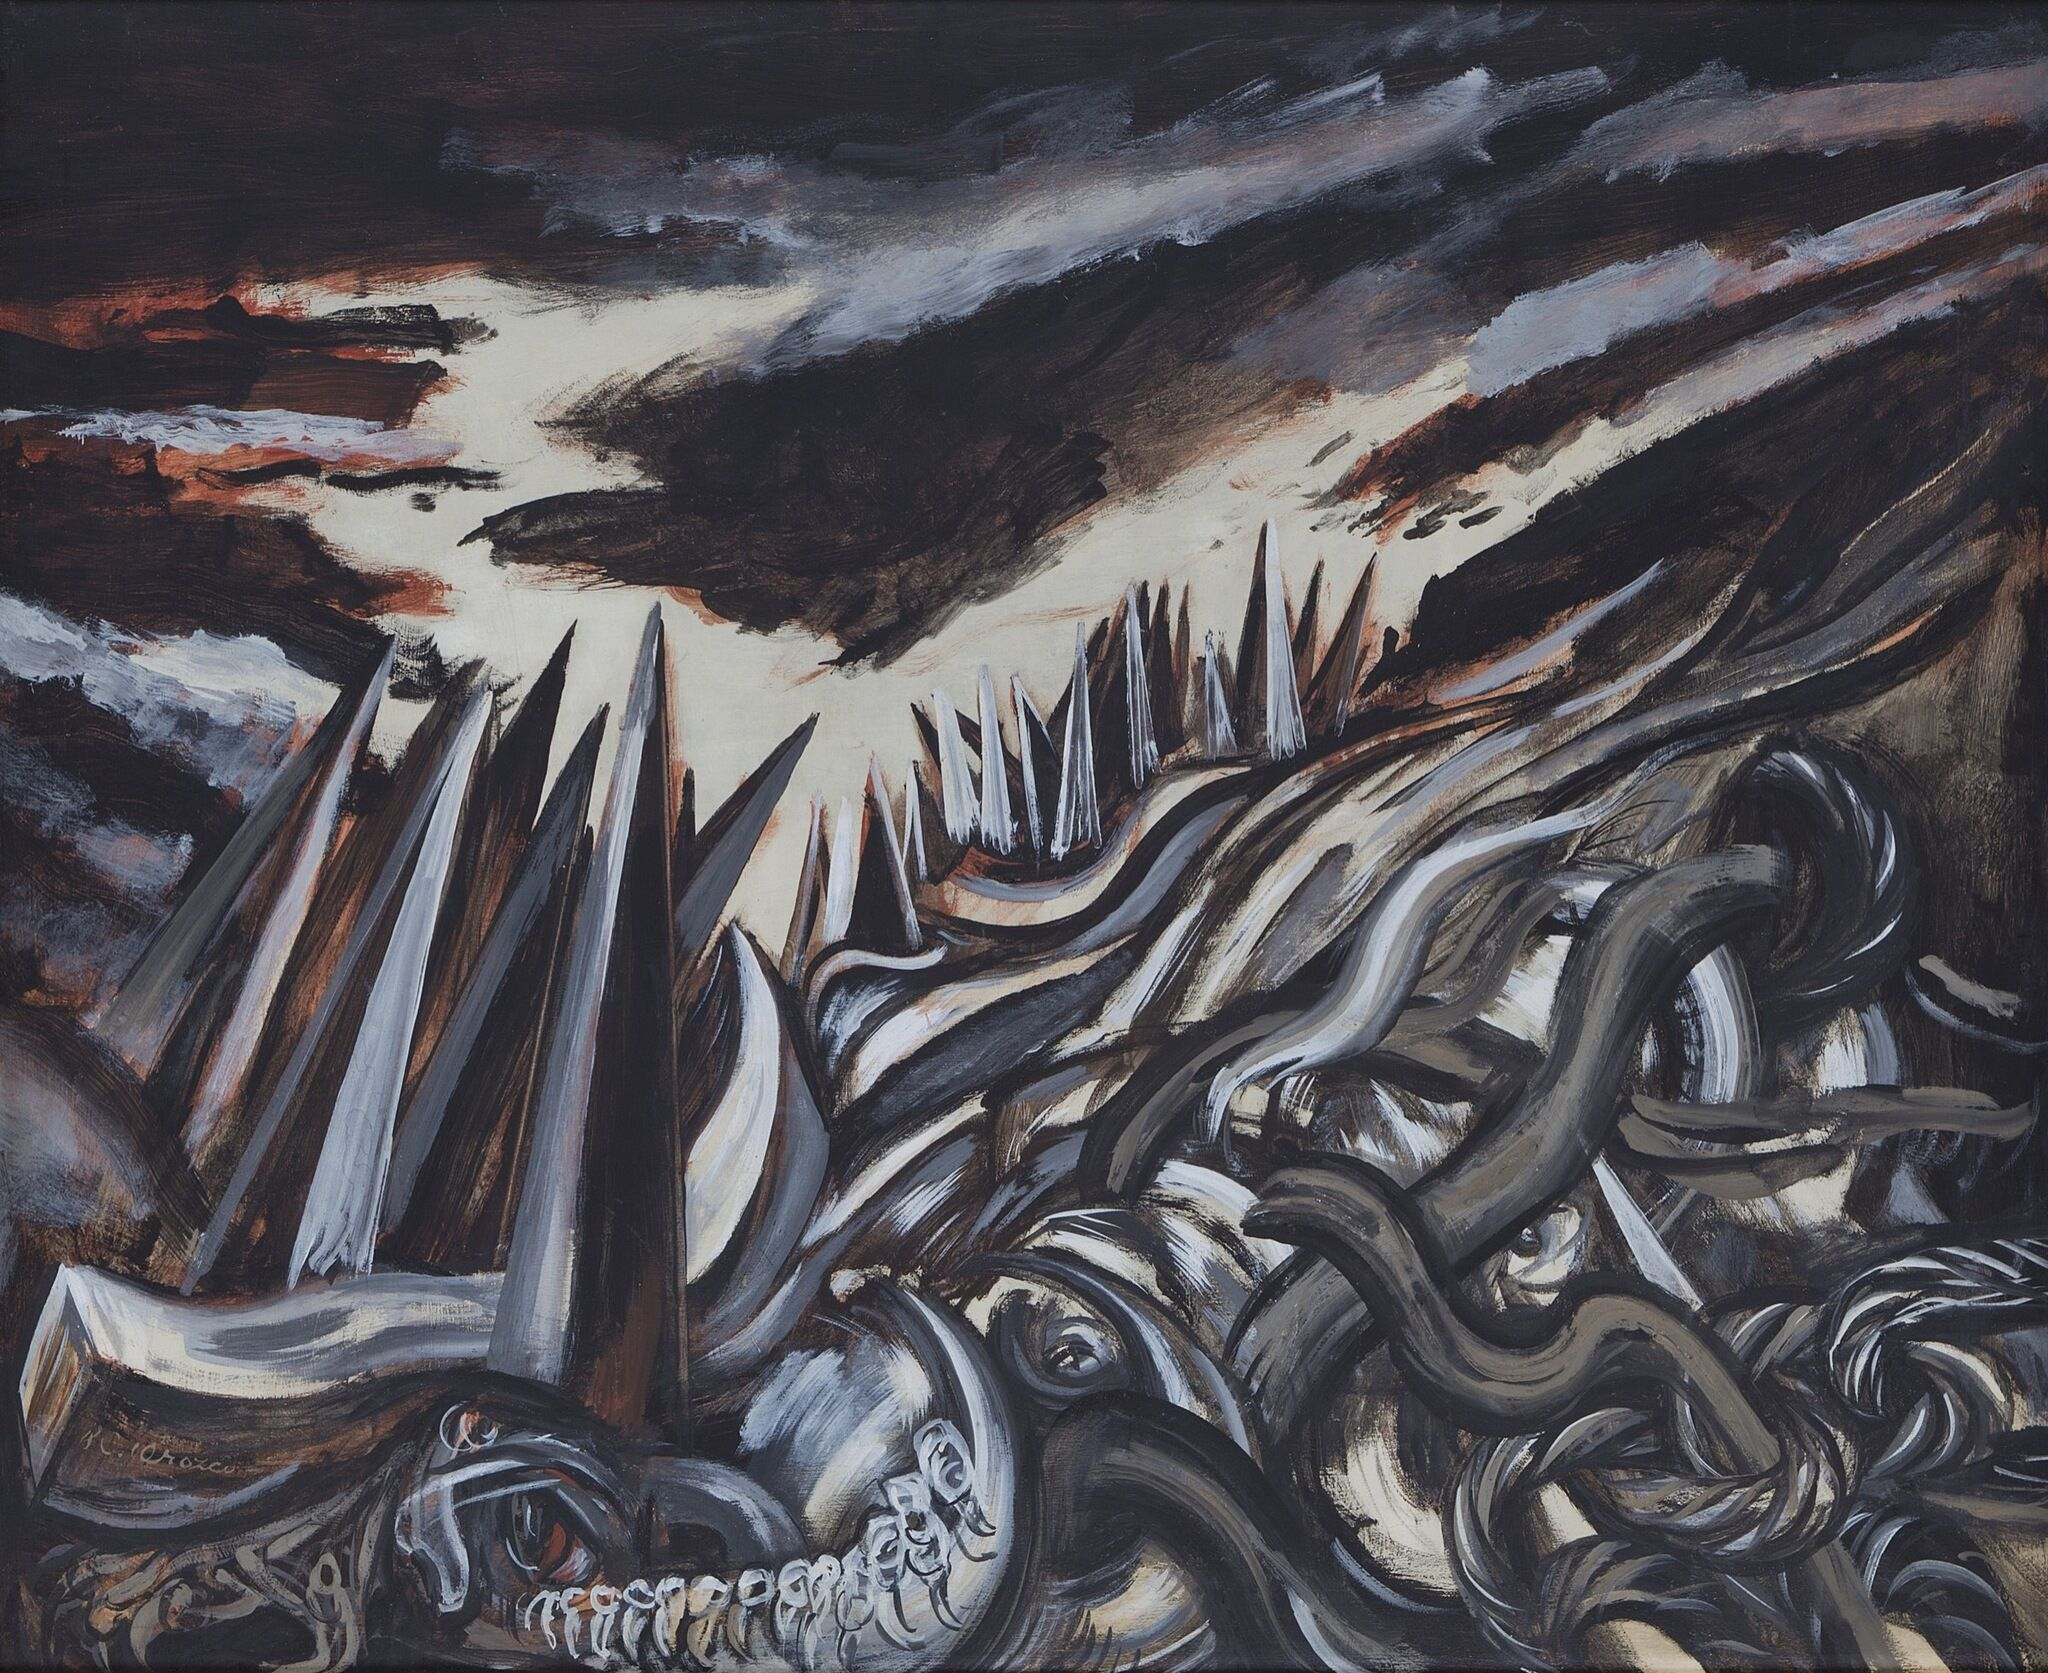 A painting depicting a valley full of abstract spikes.